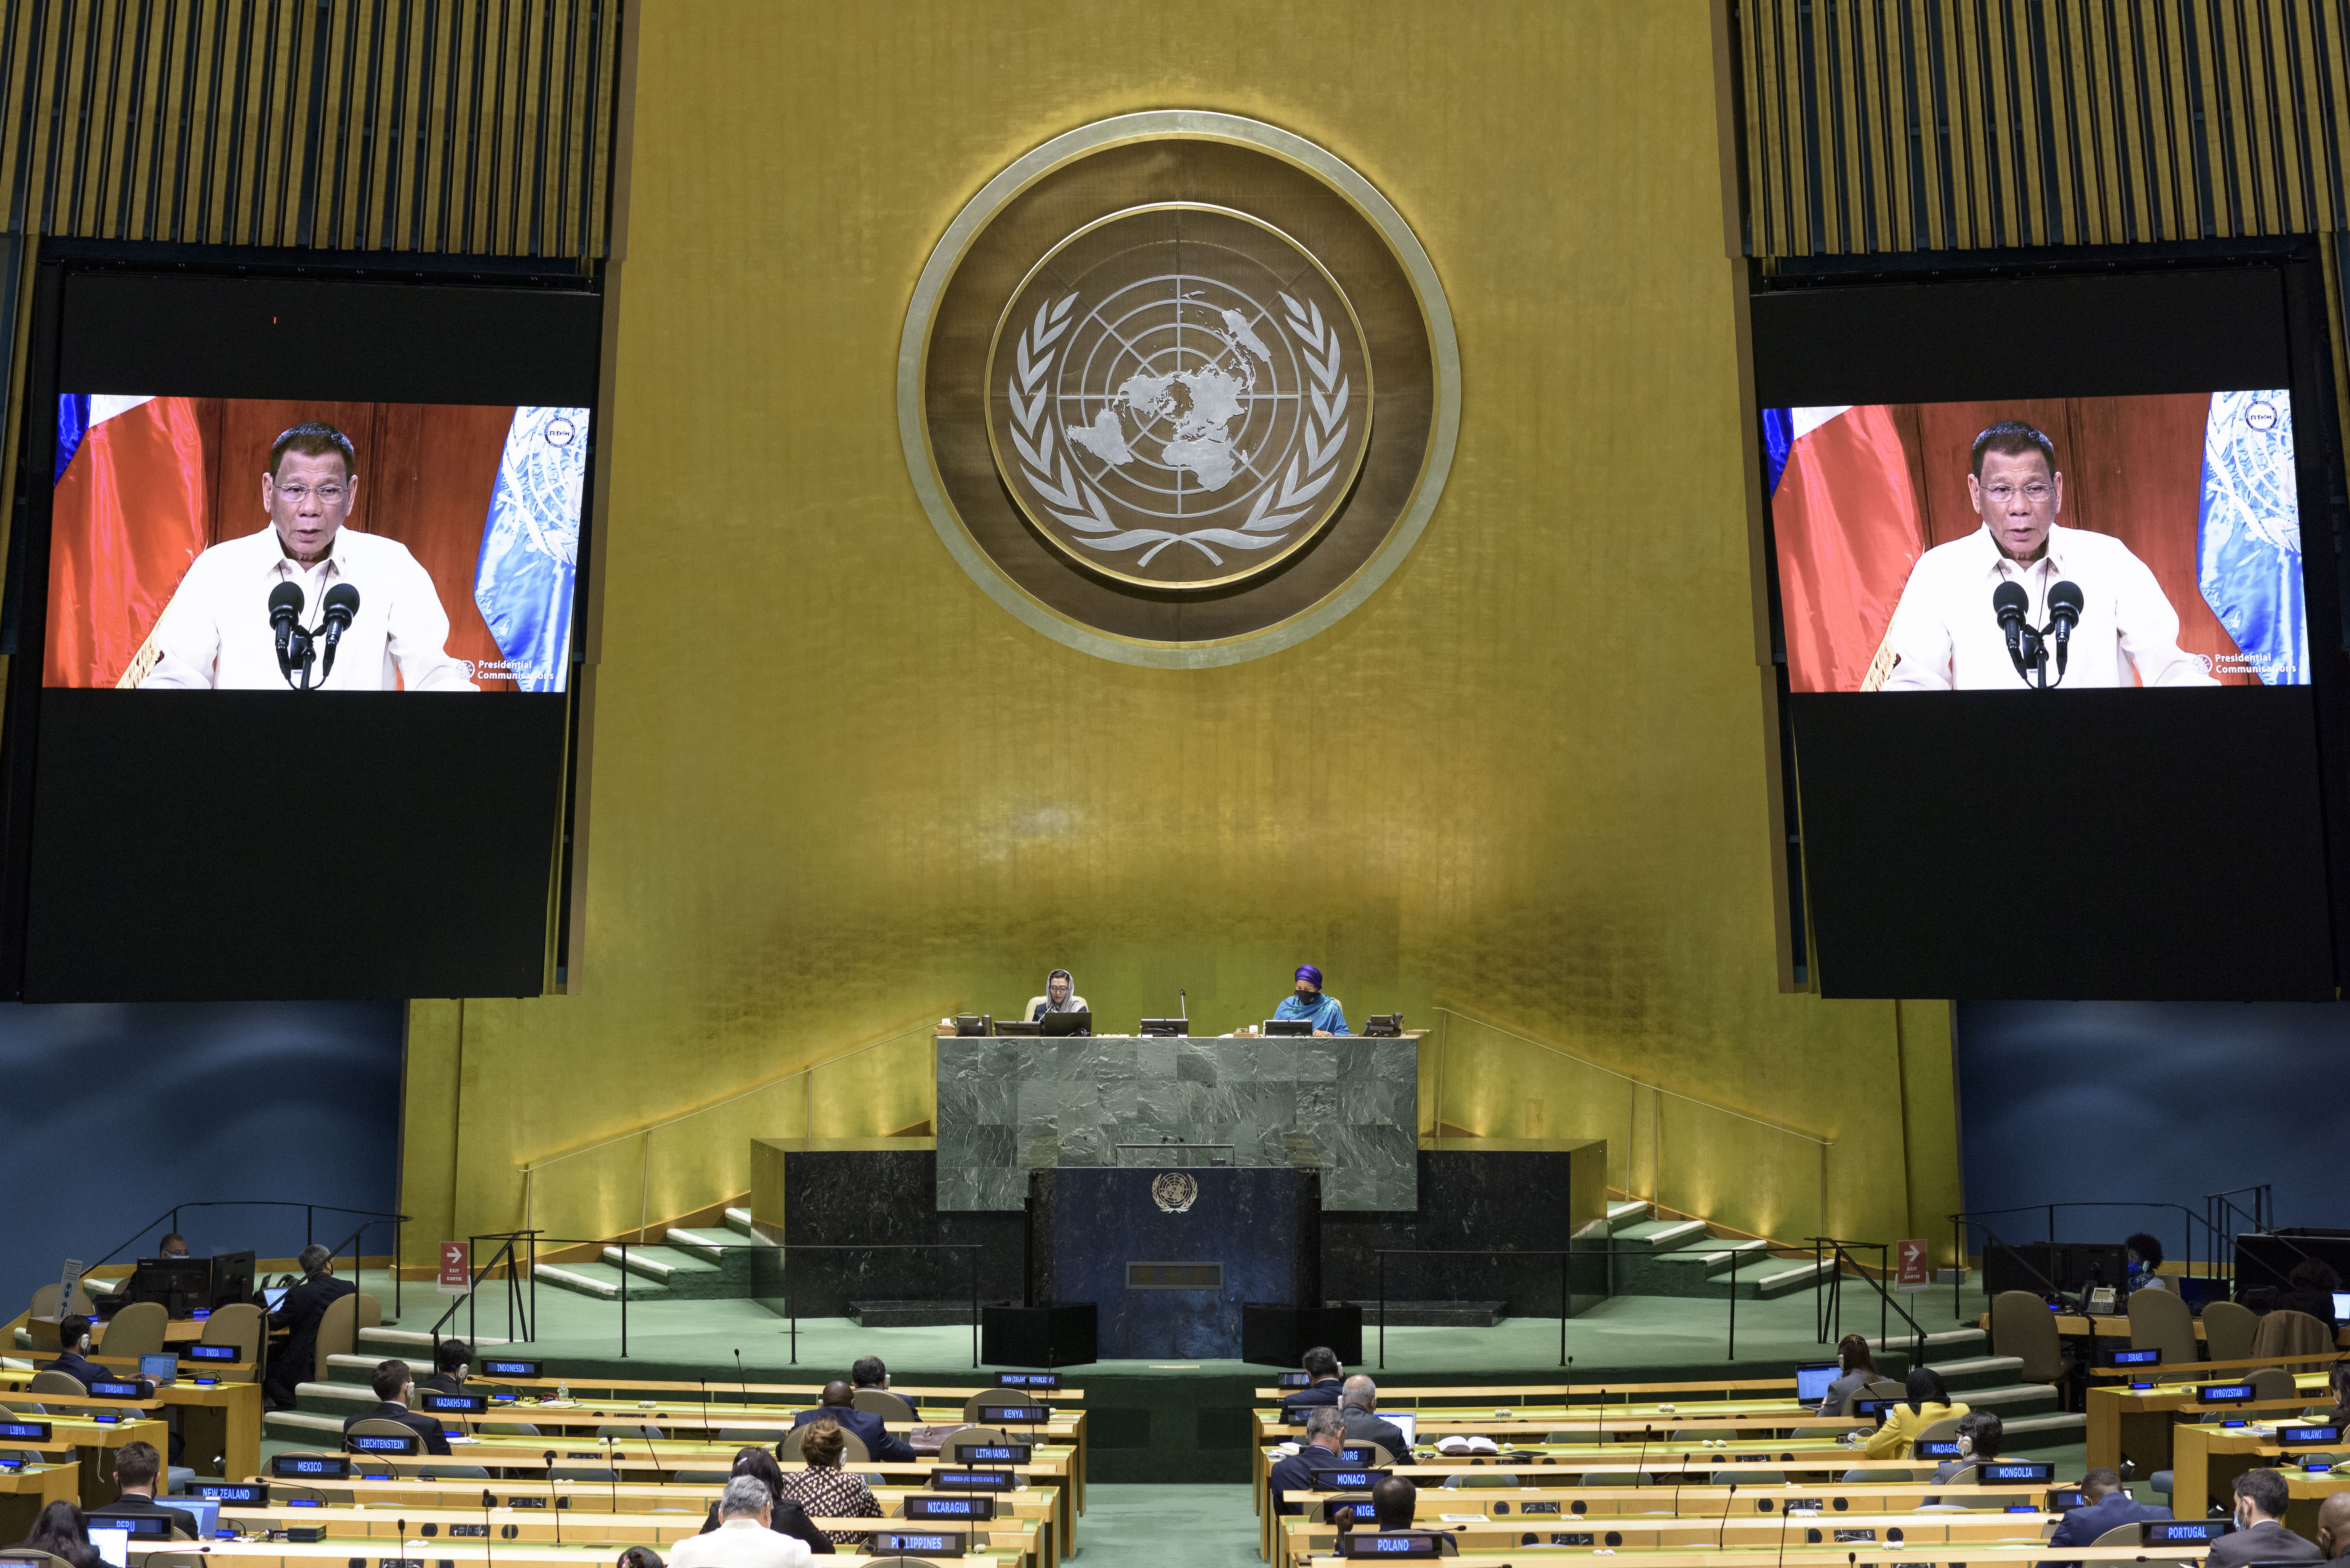 In this photo provided by the United Nations, the President of the Republic of the Philippines, Rodrigo Roa Duterte's pre-recorded message is played during the 75th session of the United Nations General Assembly, Tuesday, Sept. 22, 2020, at U.N. headquarters. The U.N.'s first virtual meeting of world leaders started Tuesday with pre-recorded speeches from some of the planet's biggest powers, kept at home by the coronavirus pandemic that will likely be a dominant theme at their video gathering this year. (Manuel Elias/UN Photo via AP)